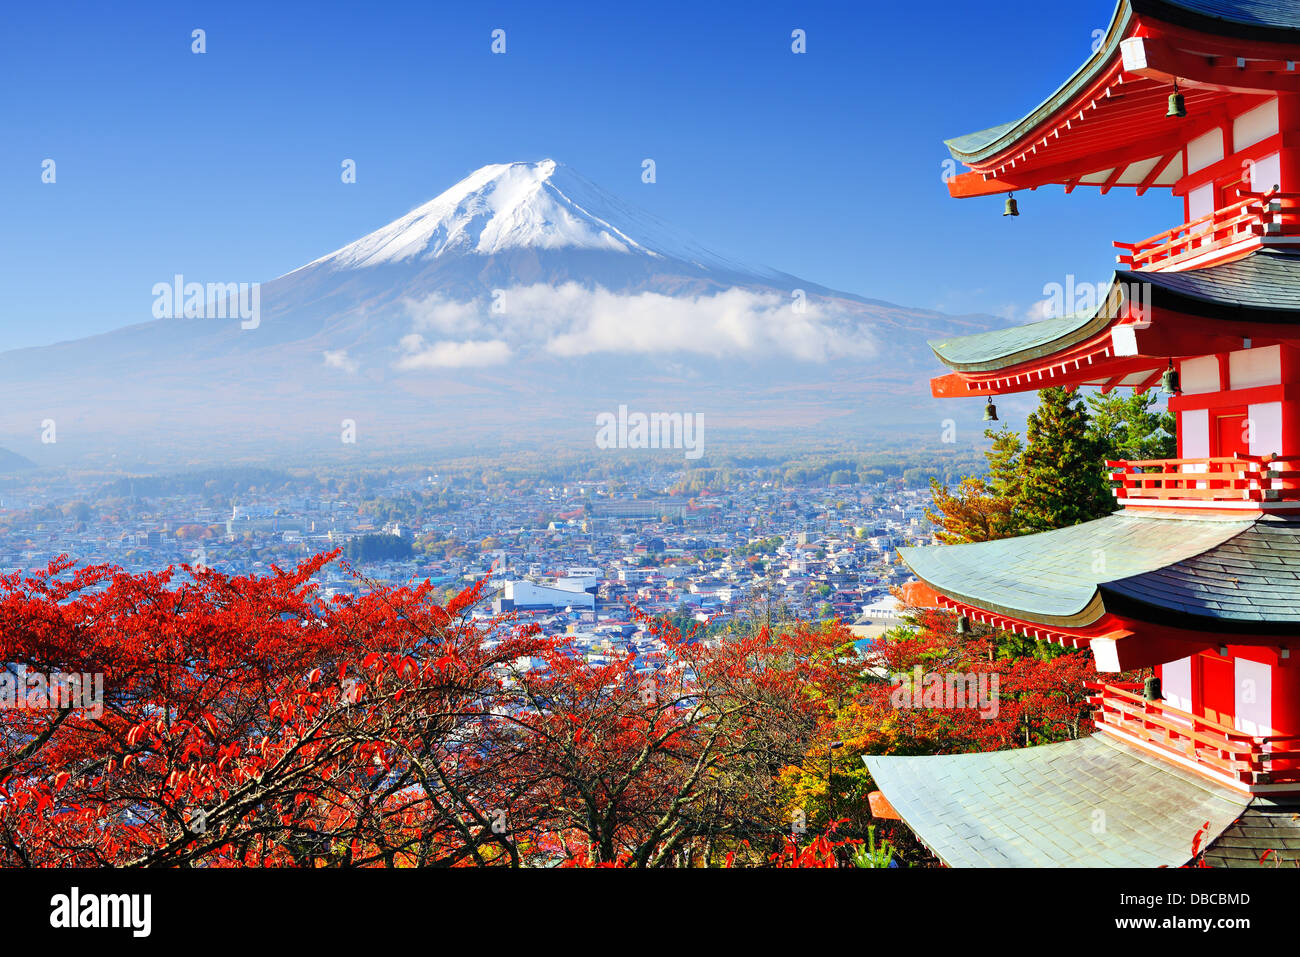 Mt. Fuji with fall colors in japan. - Stock Image